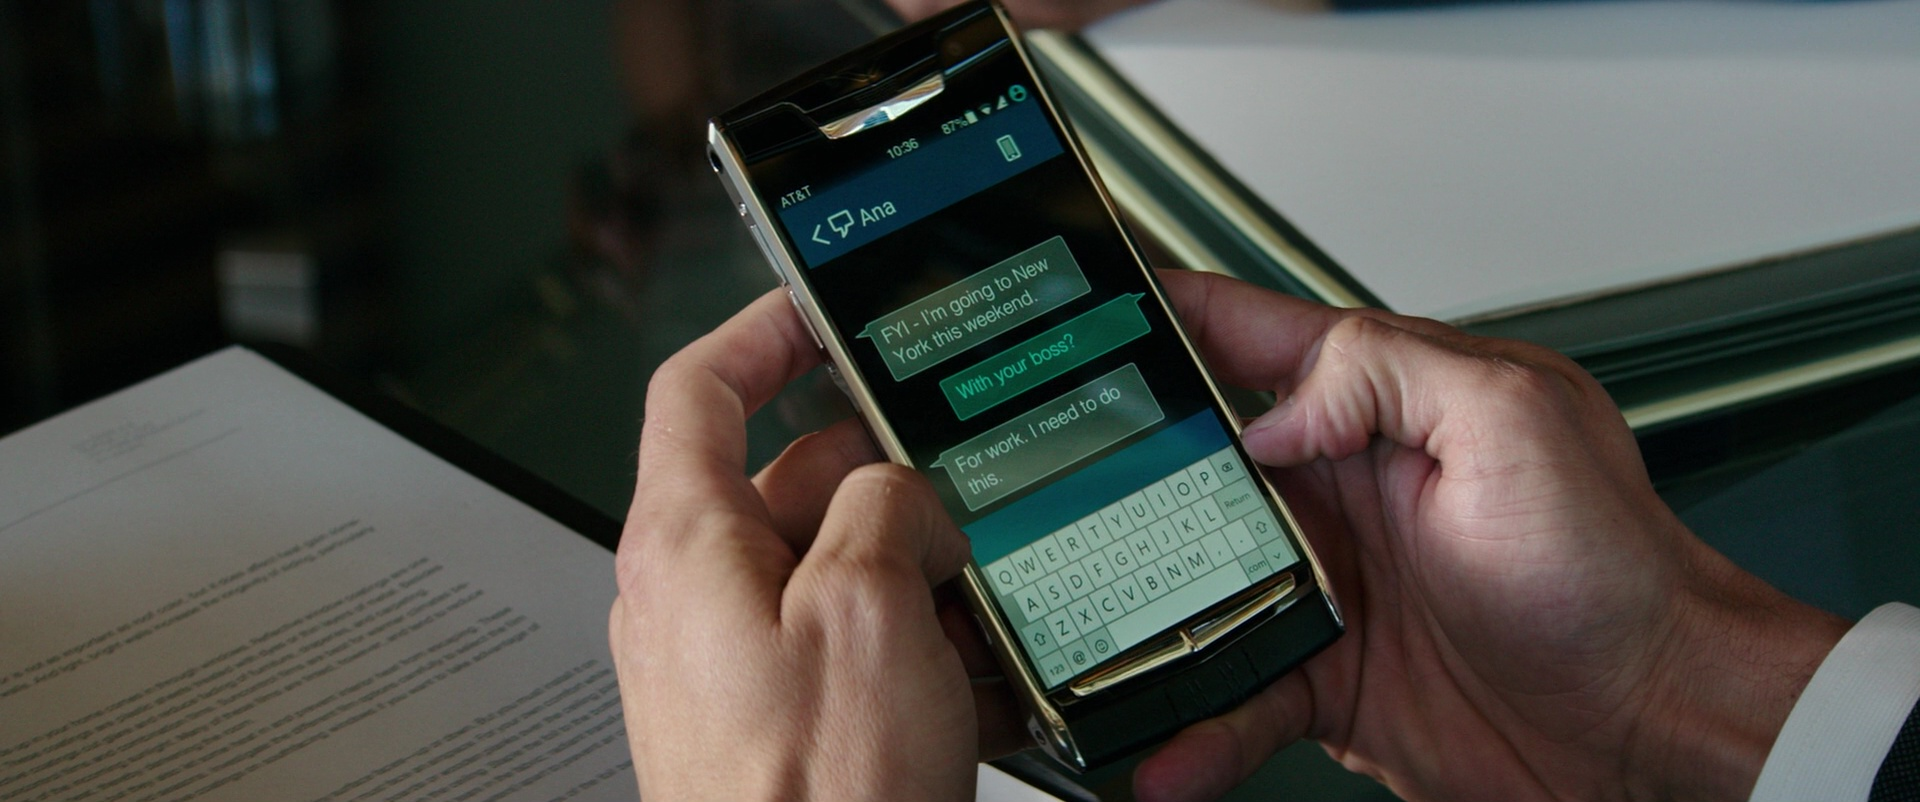 Audi A3 2008 >> AT&T and Vertu Signature Touch Smartphone Used by Jamie Dornan in Fifty Shades Darker (2017) Movie